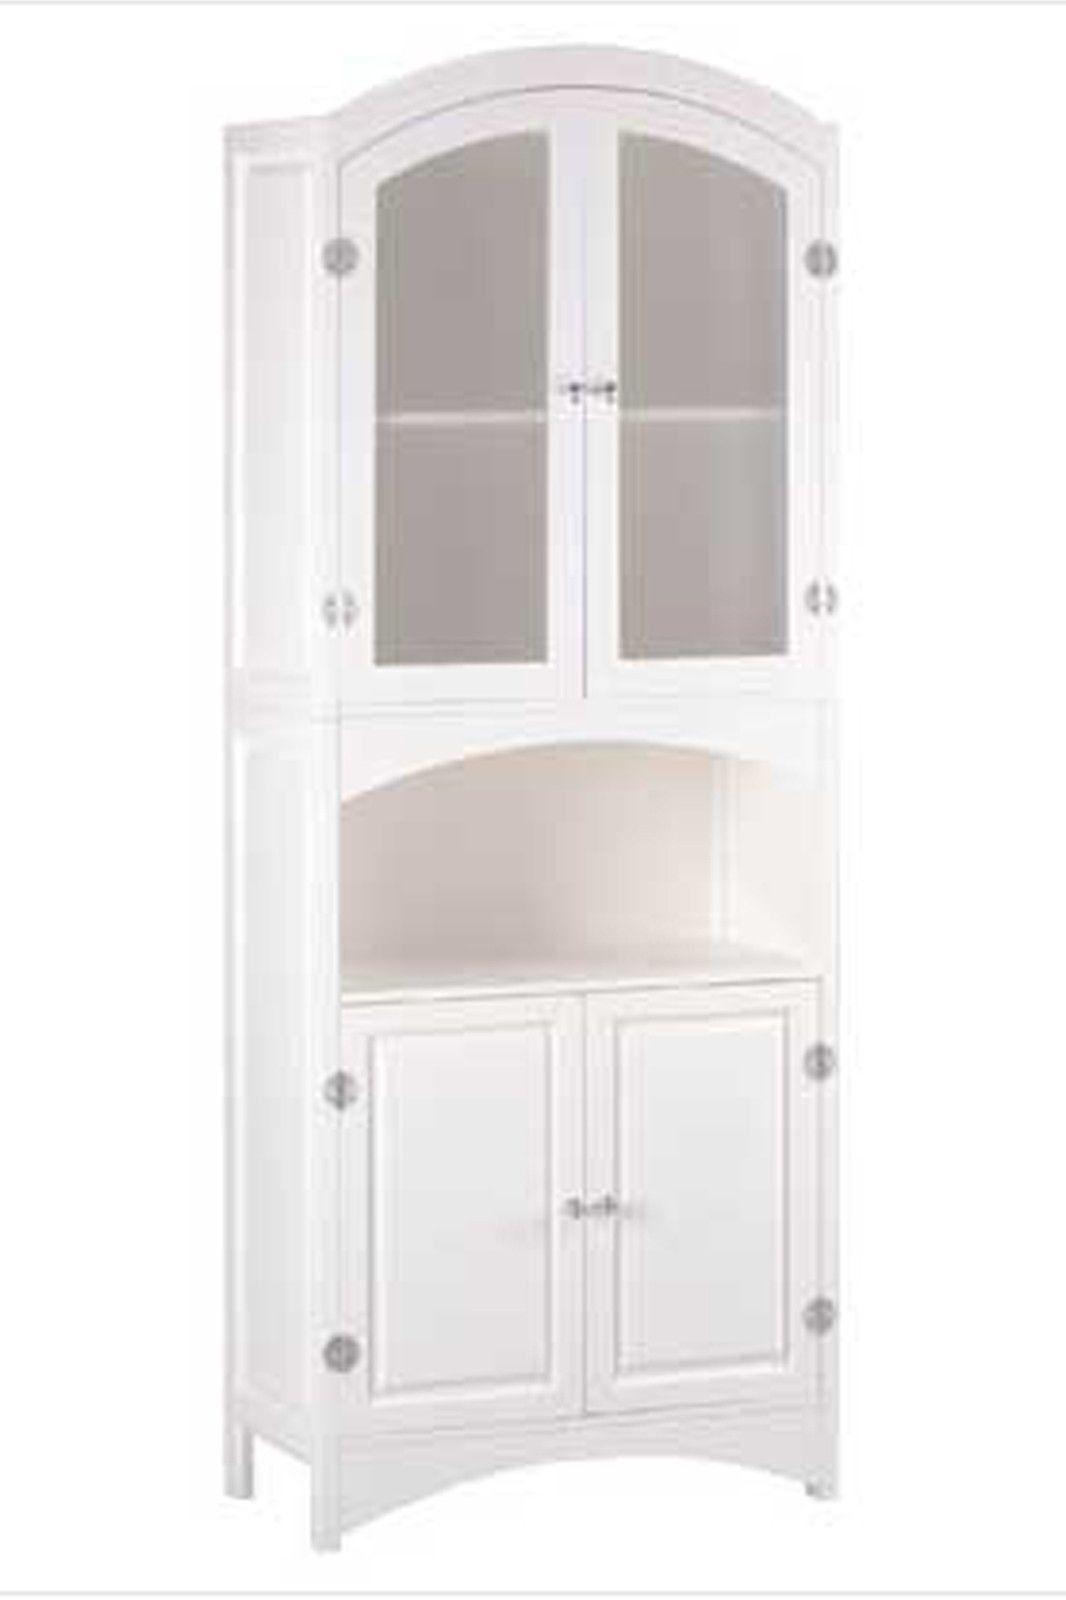 Linen Cabinet With Glass Doors 2020 In 2020 White Linen Cabinet Linen Cabinet Linen Storage Cabinet